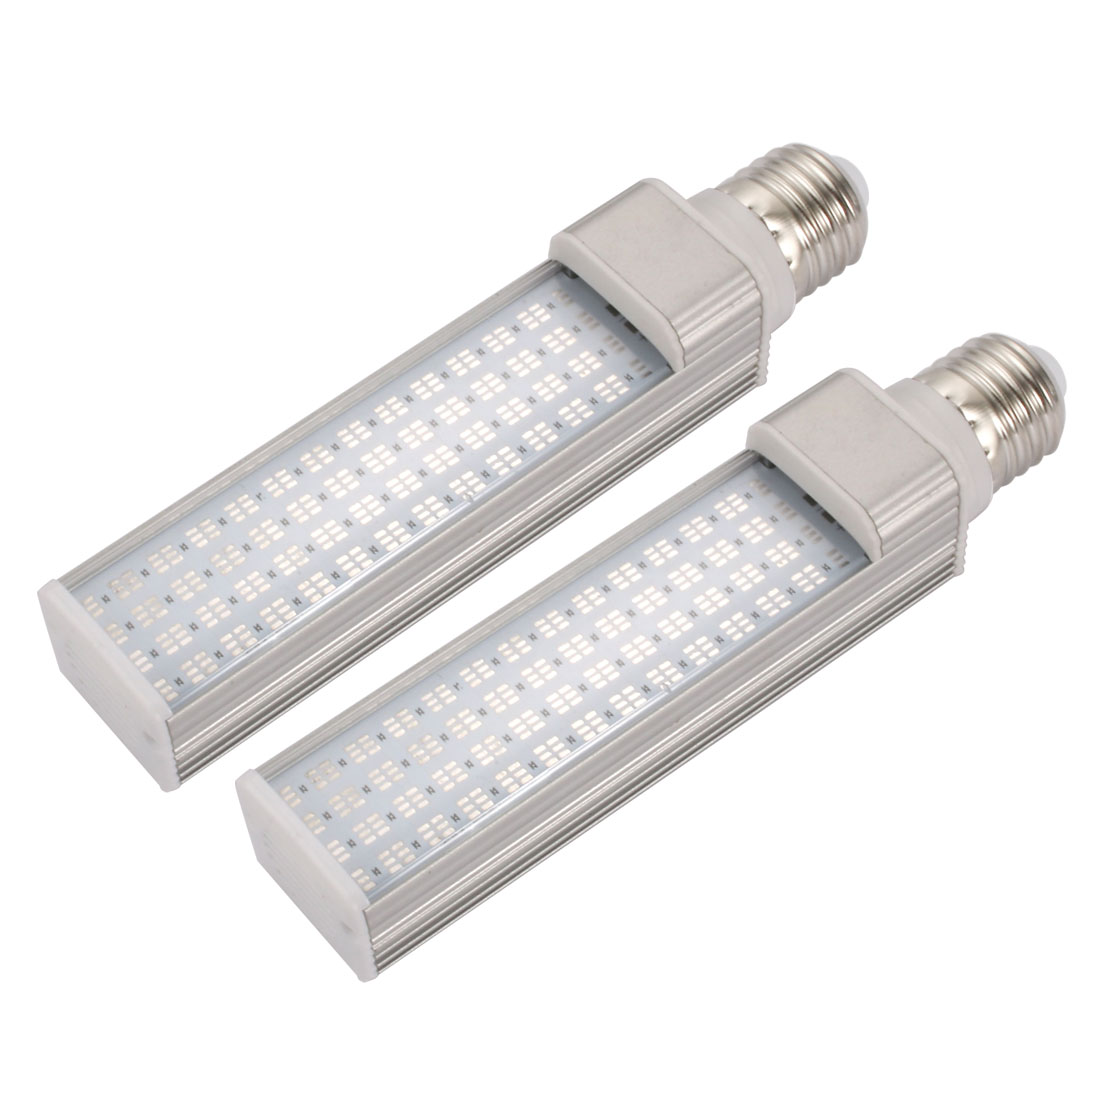 2pack DIY parts for PLC Lamp SMD5050 E27 9W PL-C Lamp Housing Kit w Clear Cover